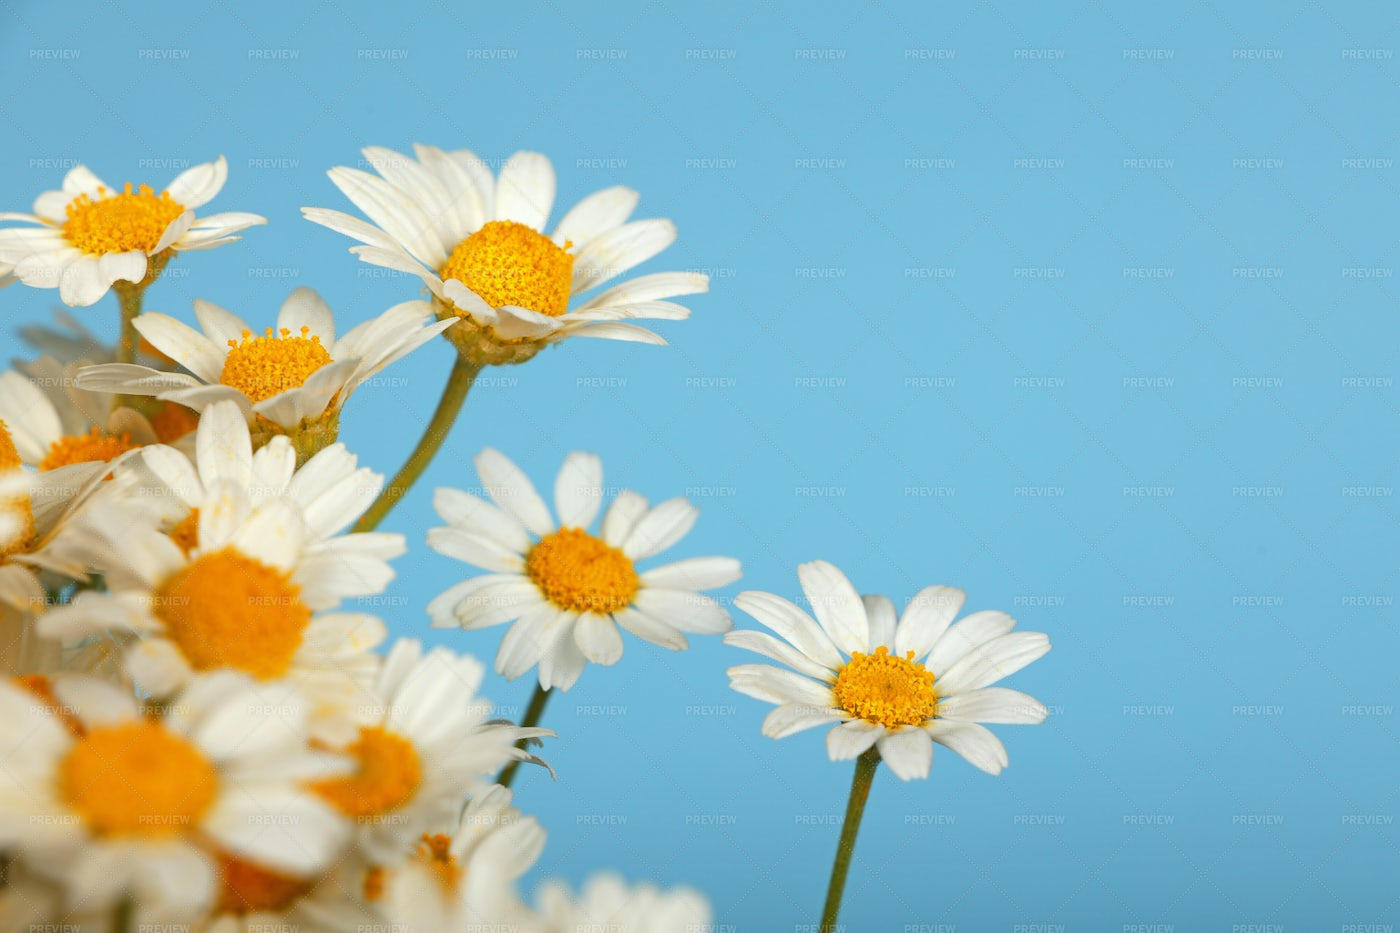 Bouquet Of Chamomile Flowers: Stock Photos